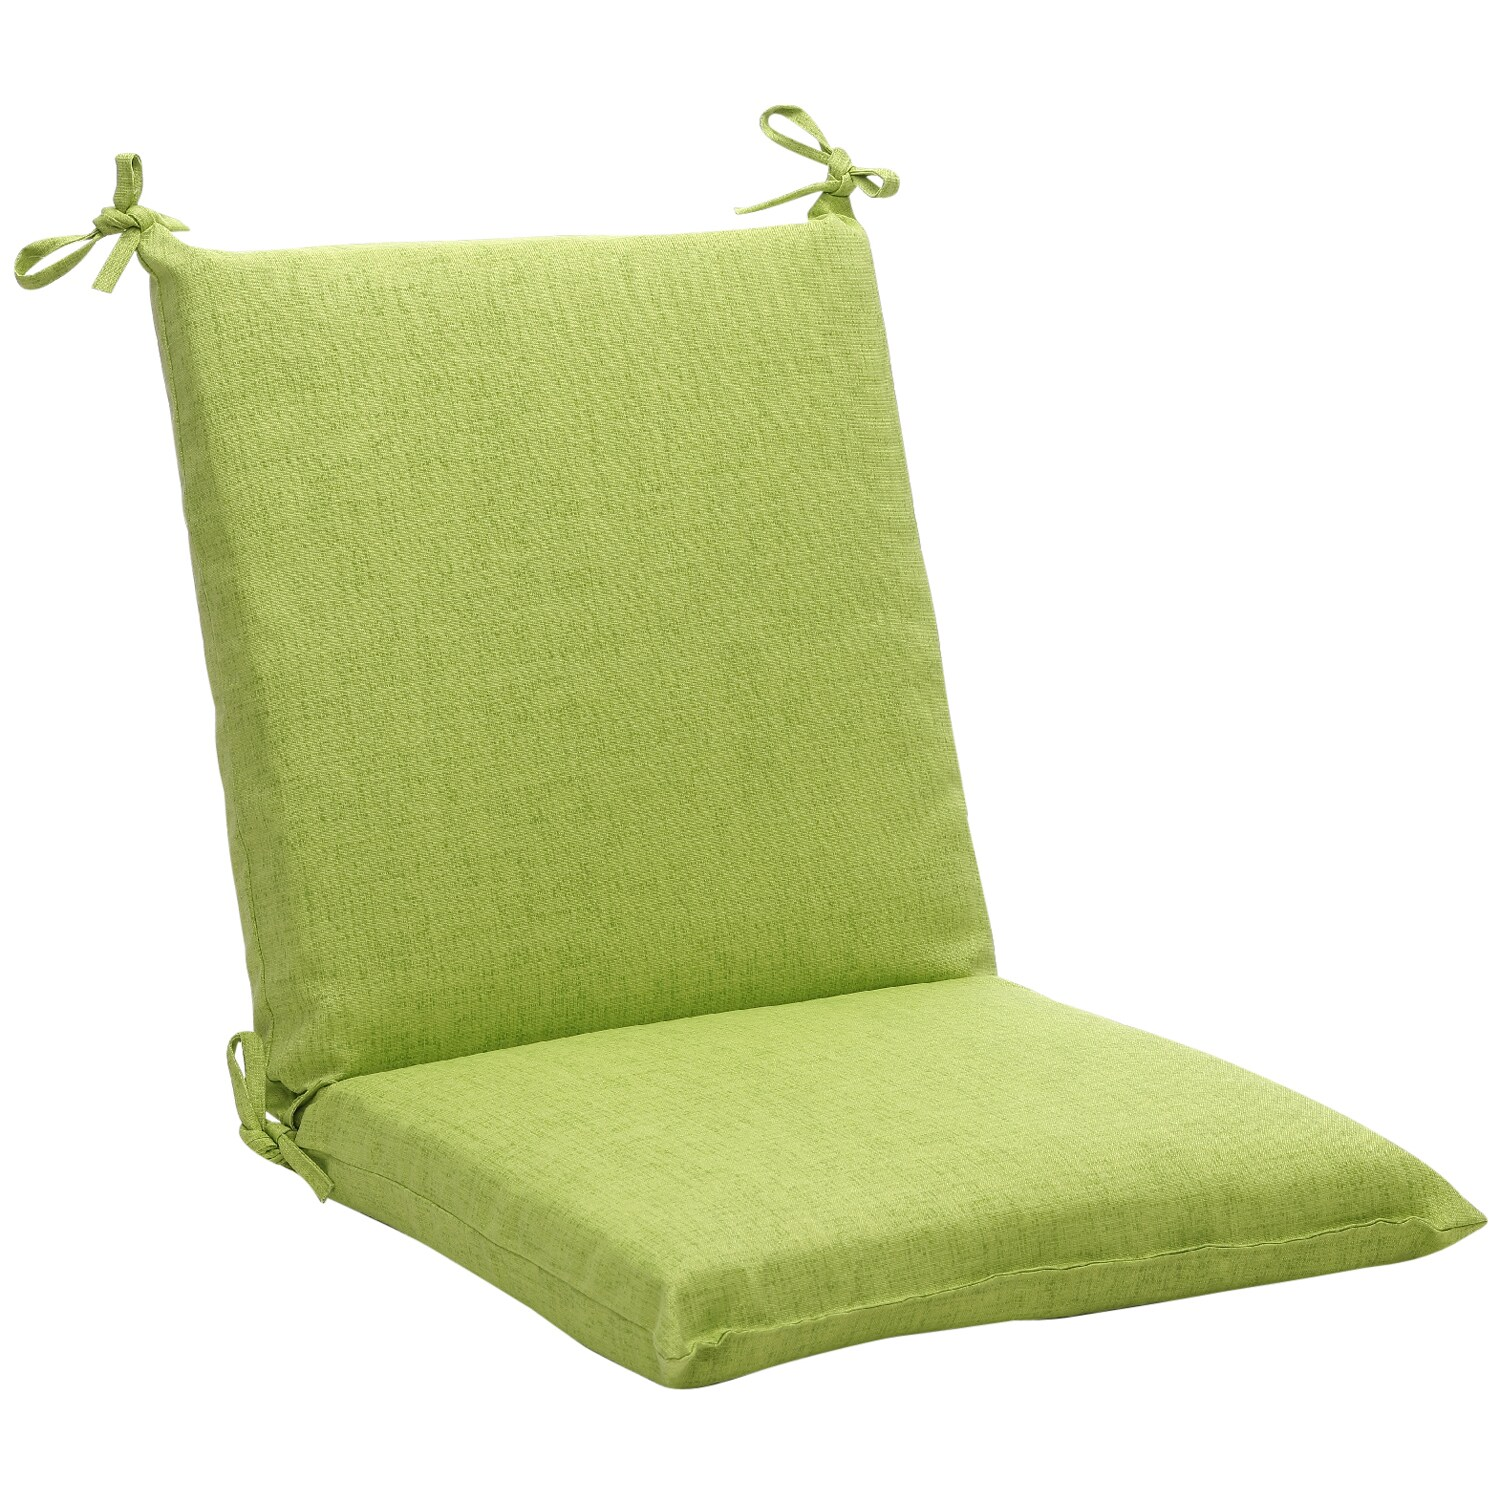 Squared Solid Green Textured Outdoor Chair Cushion Free Shipping